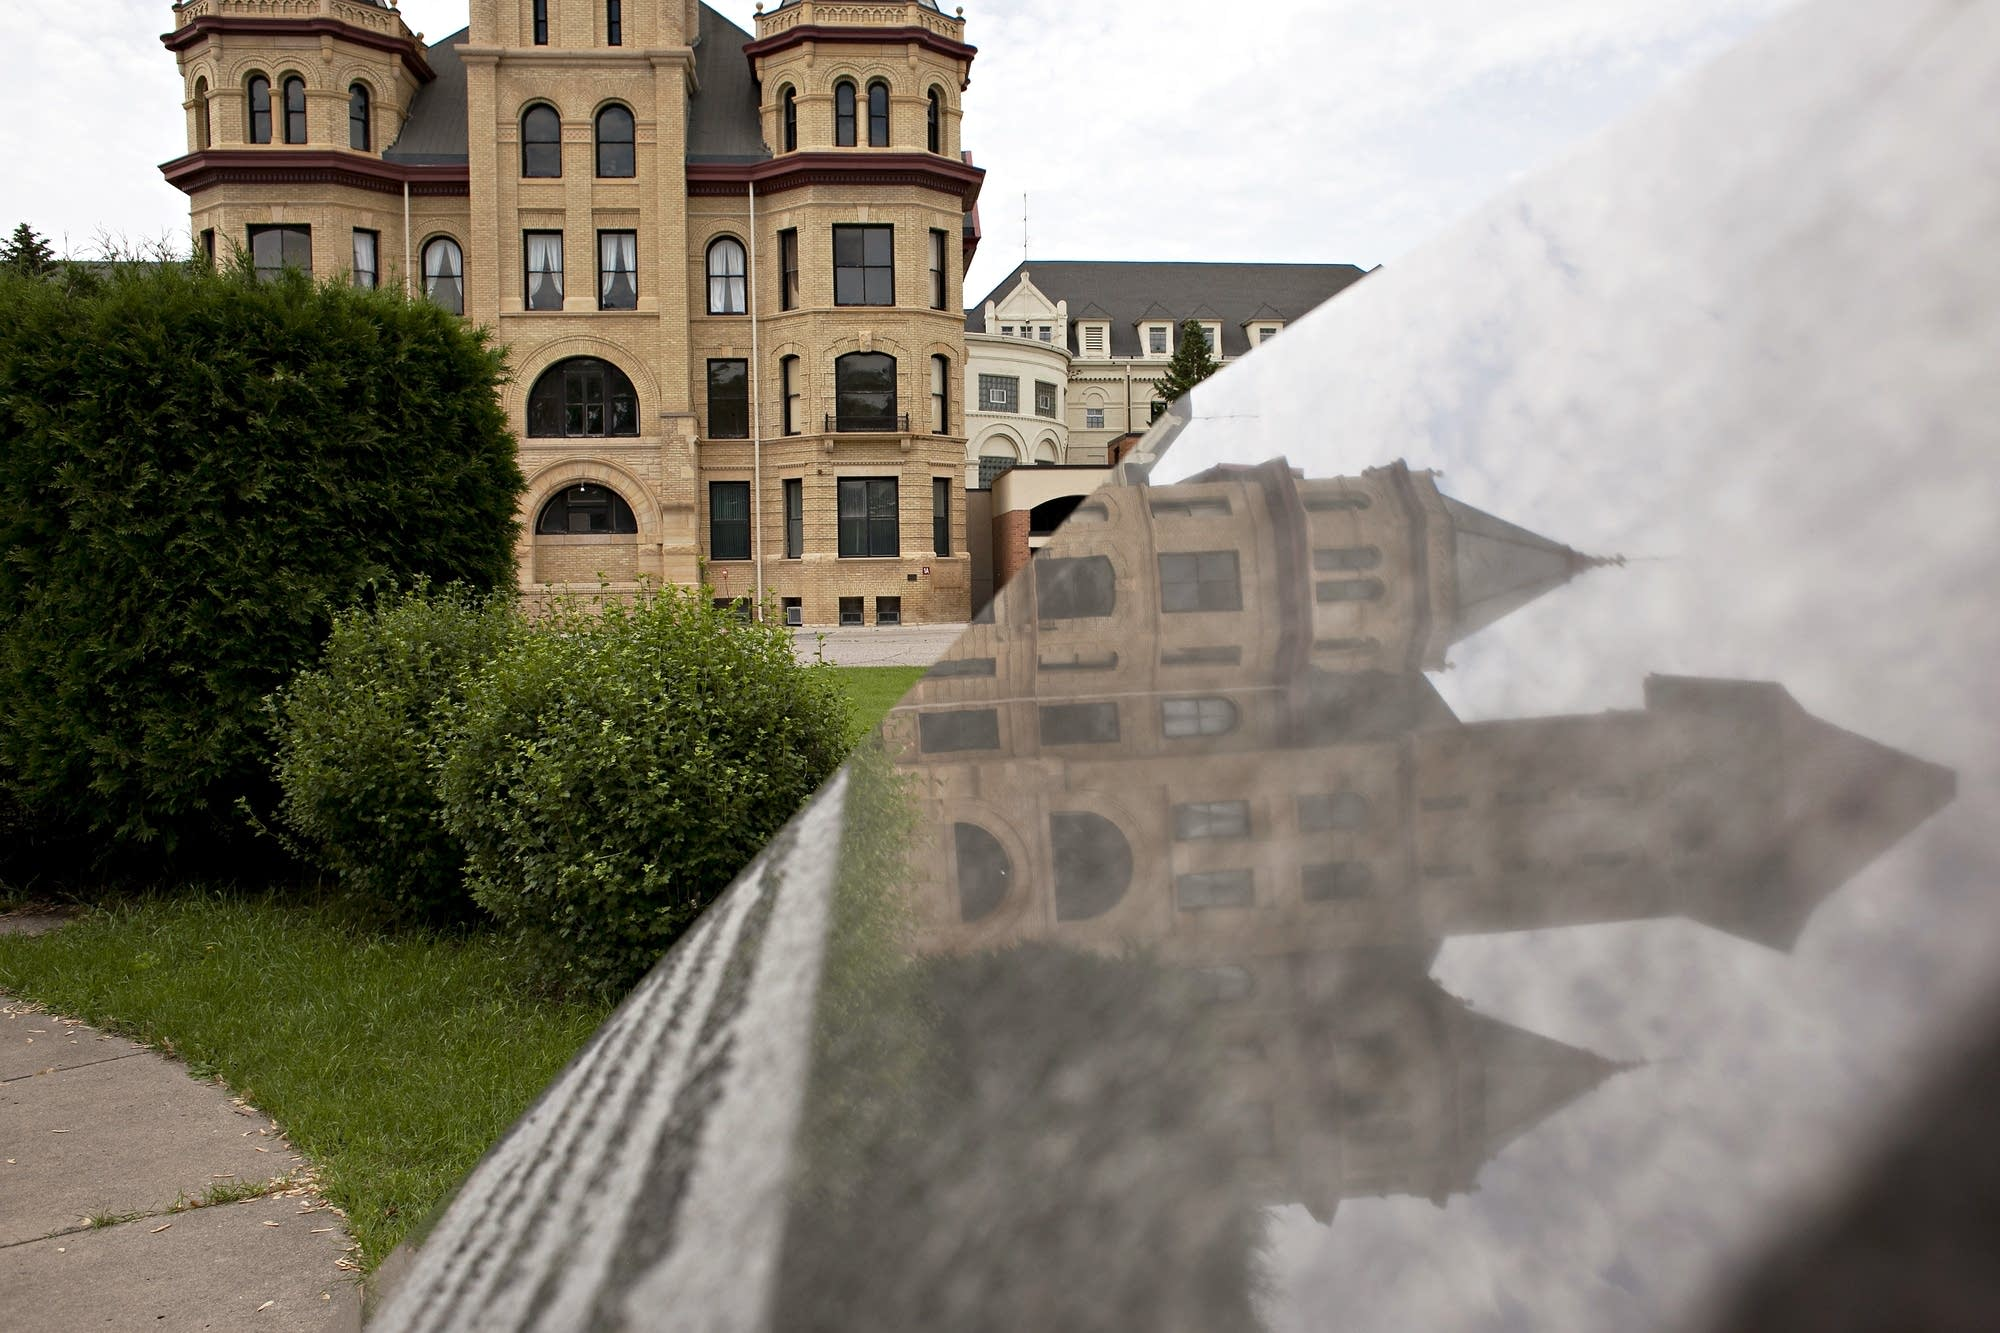 The hospital buildings are reflected in a stone monument in a garden.